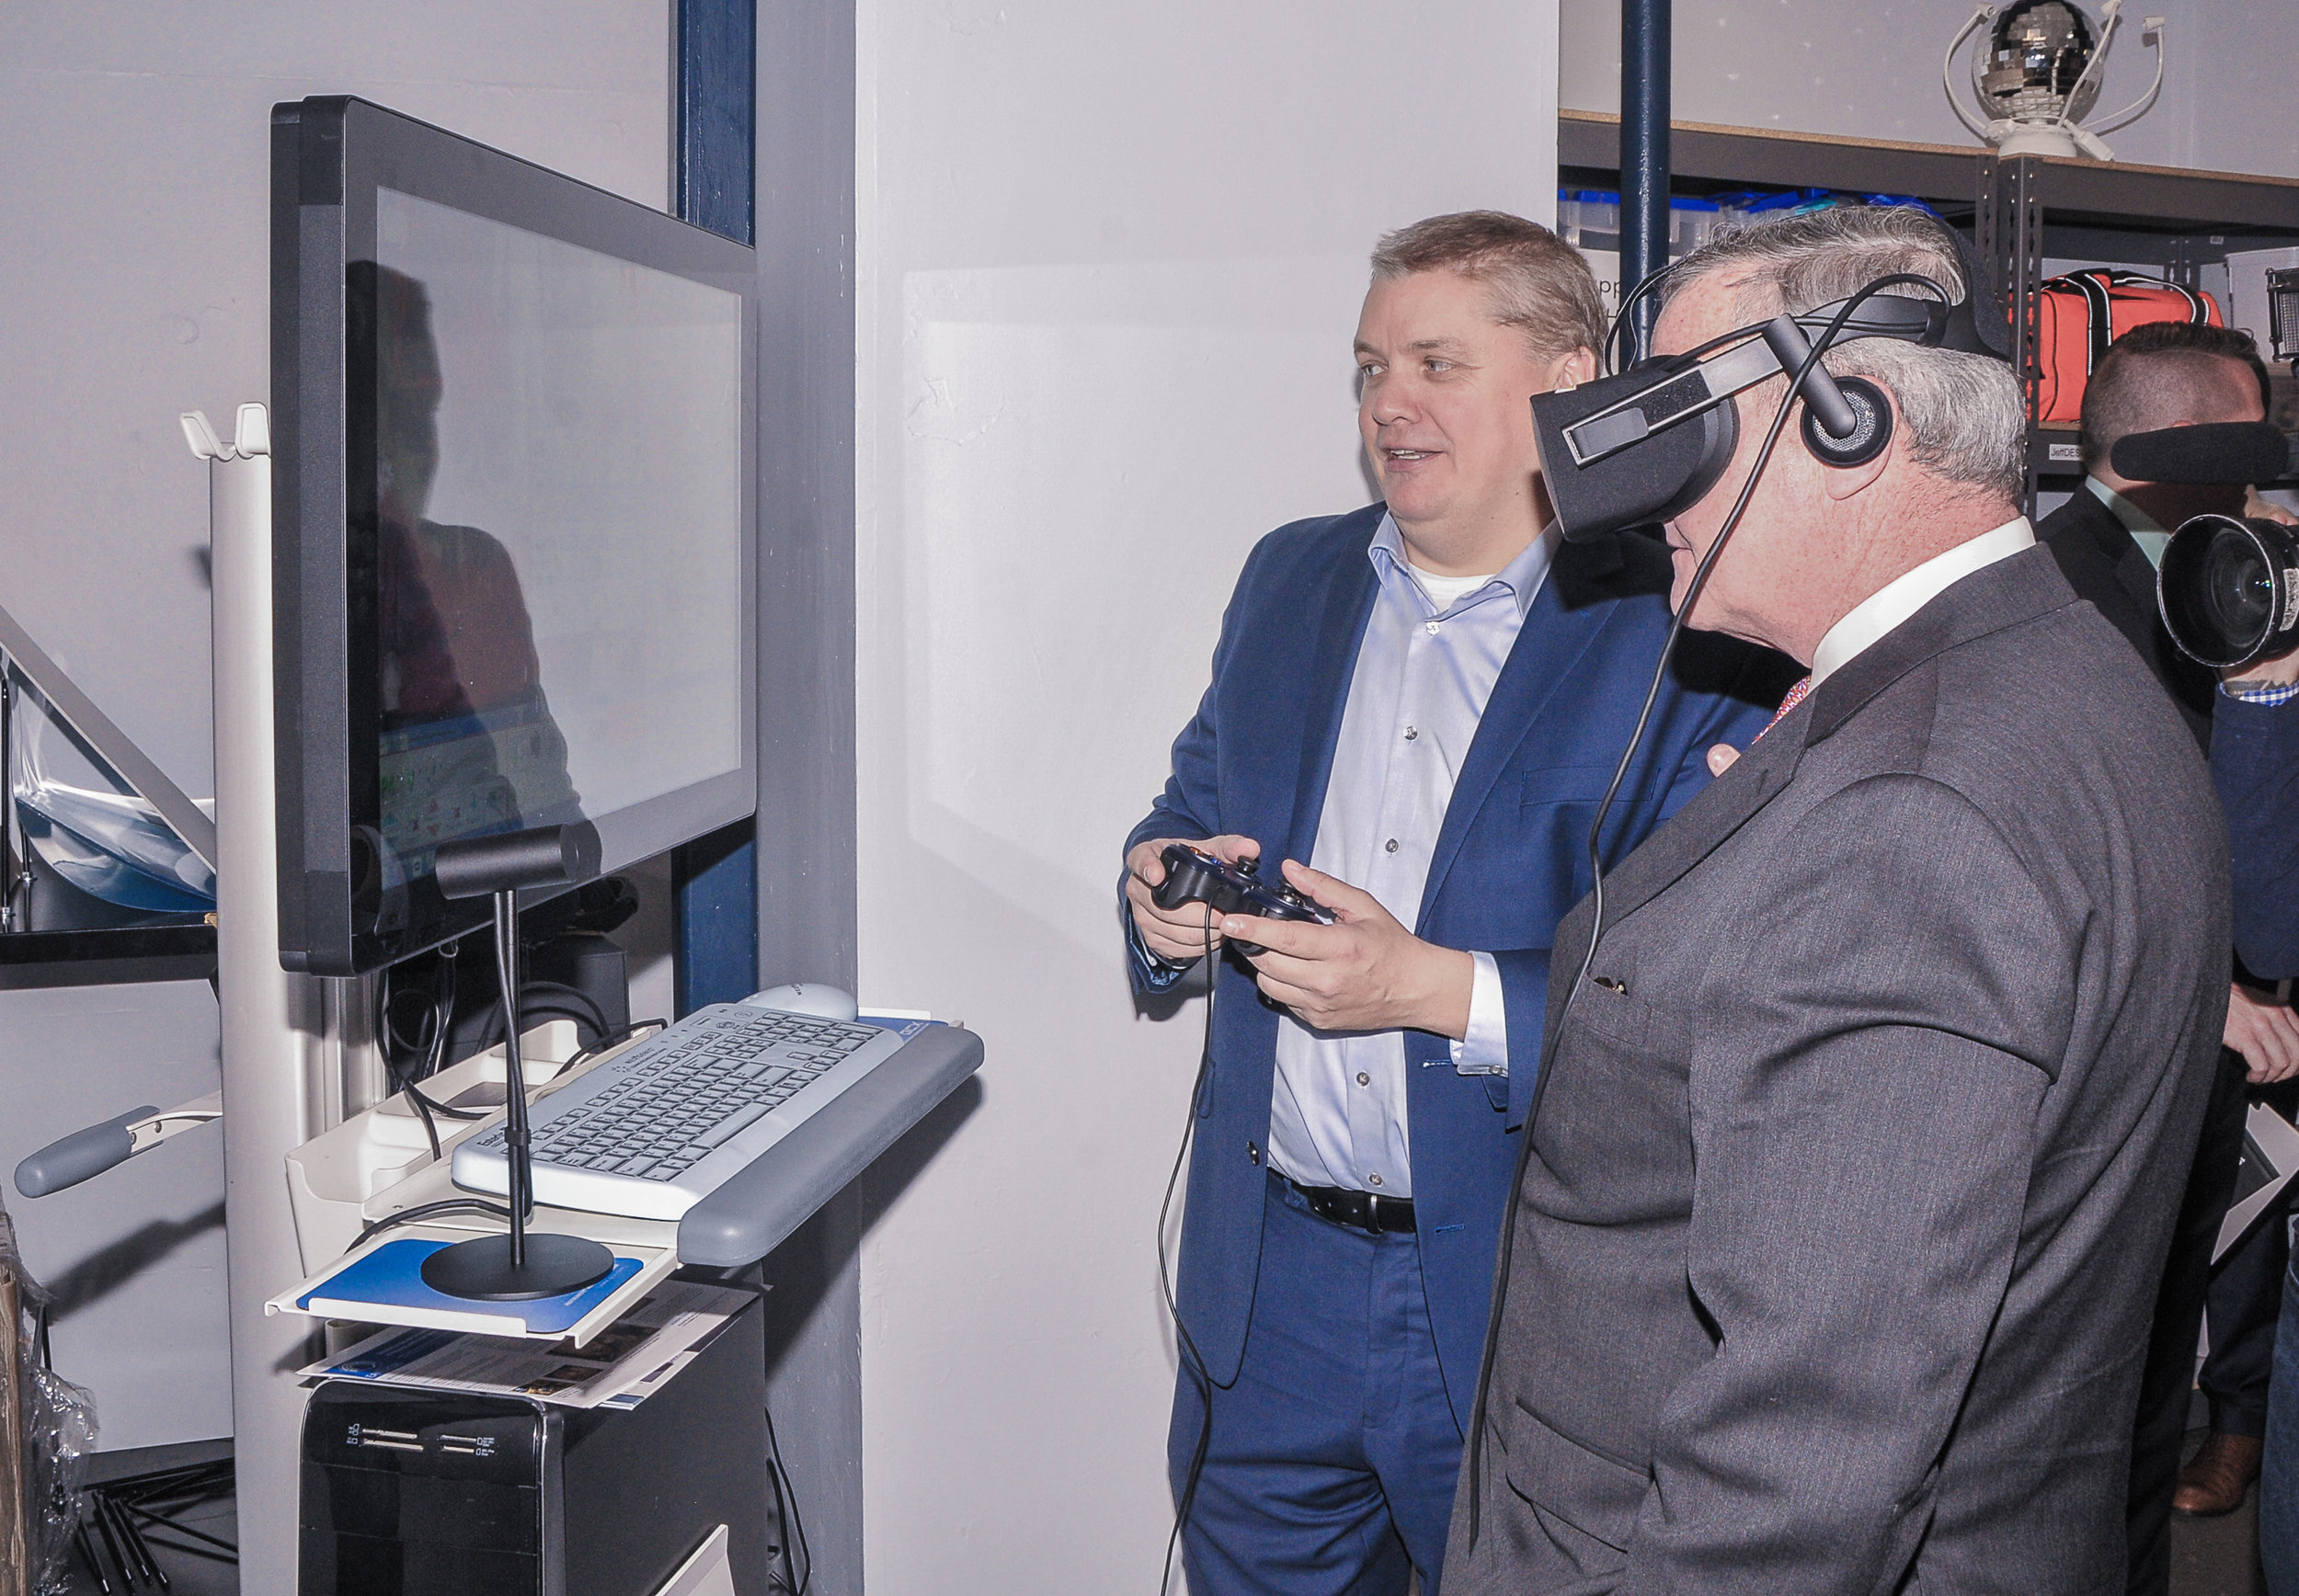 Mayor Kenney testing out a virtual reality surgical training simulator.